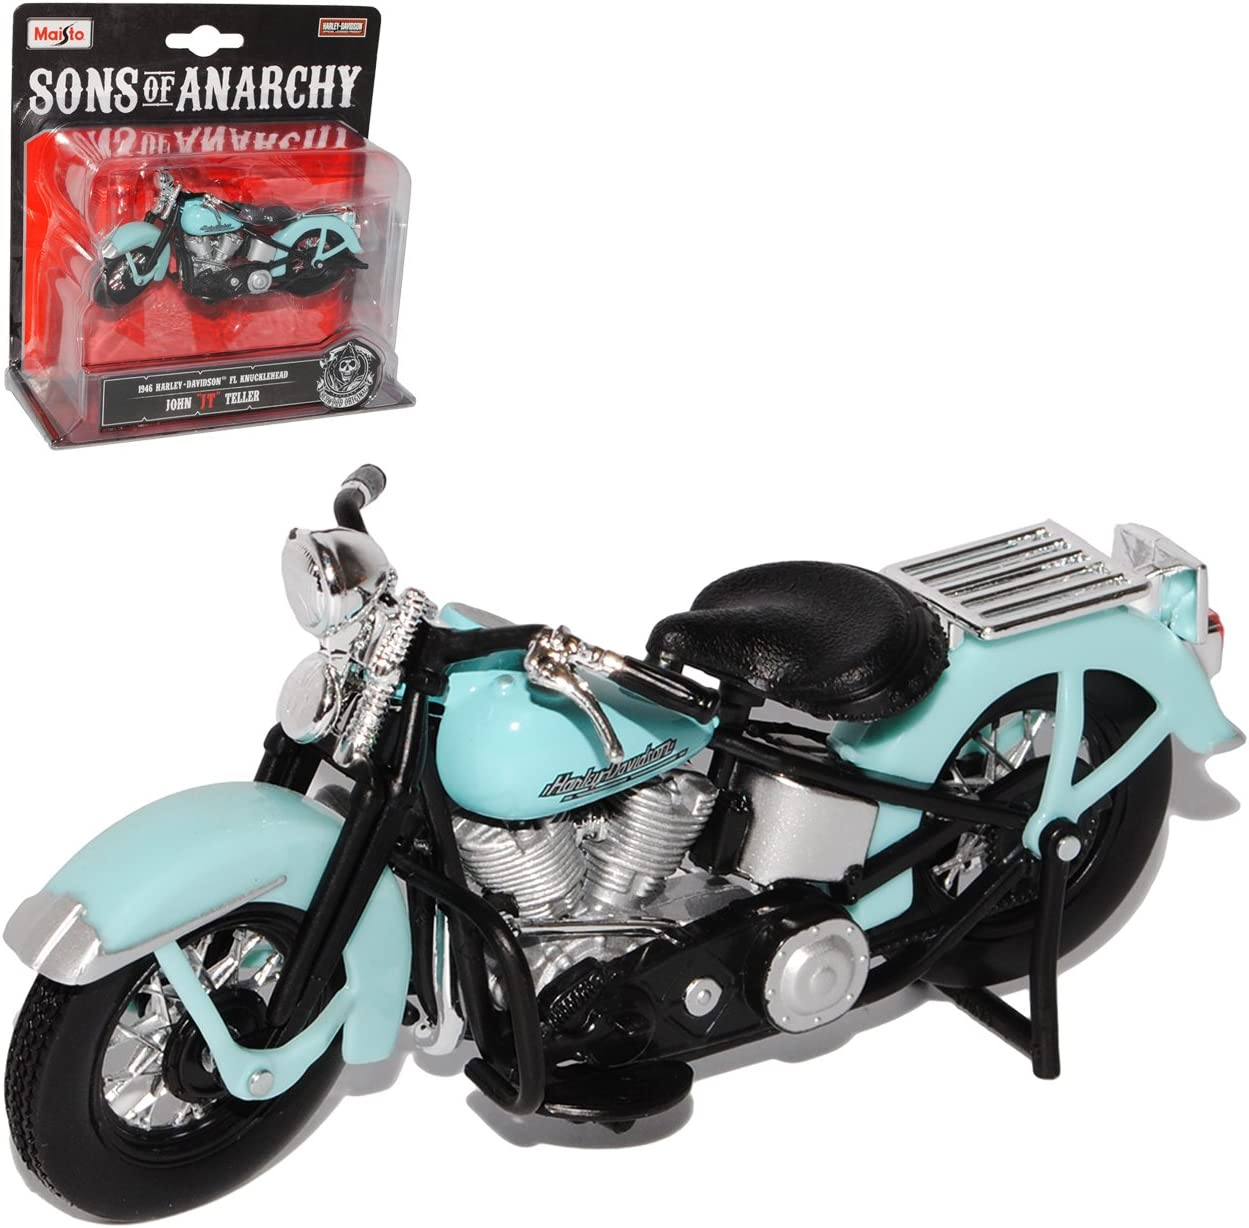 "Harley Davidson 1946 FL Knucklehead 1:18  Sons of Anarchy /""JT/"" John Teller"